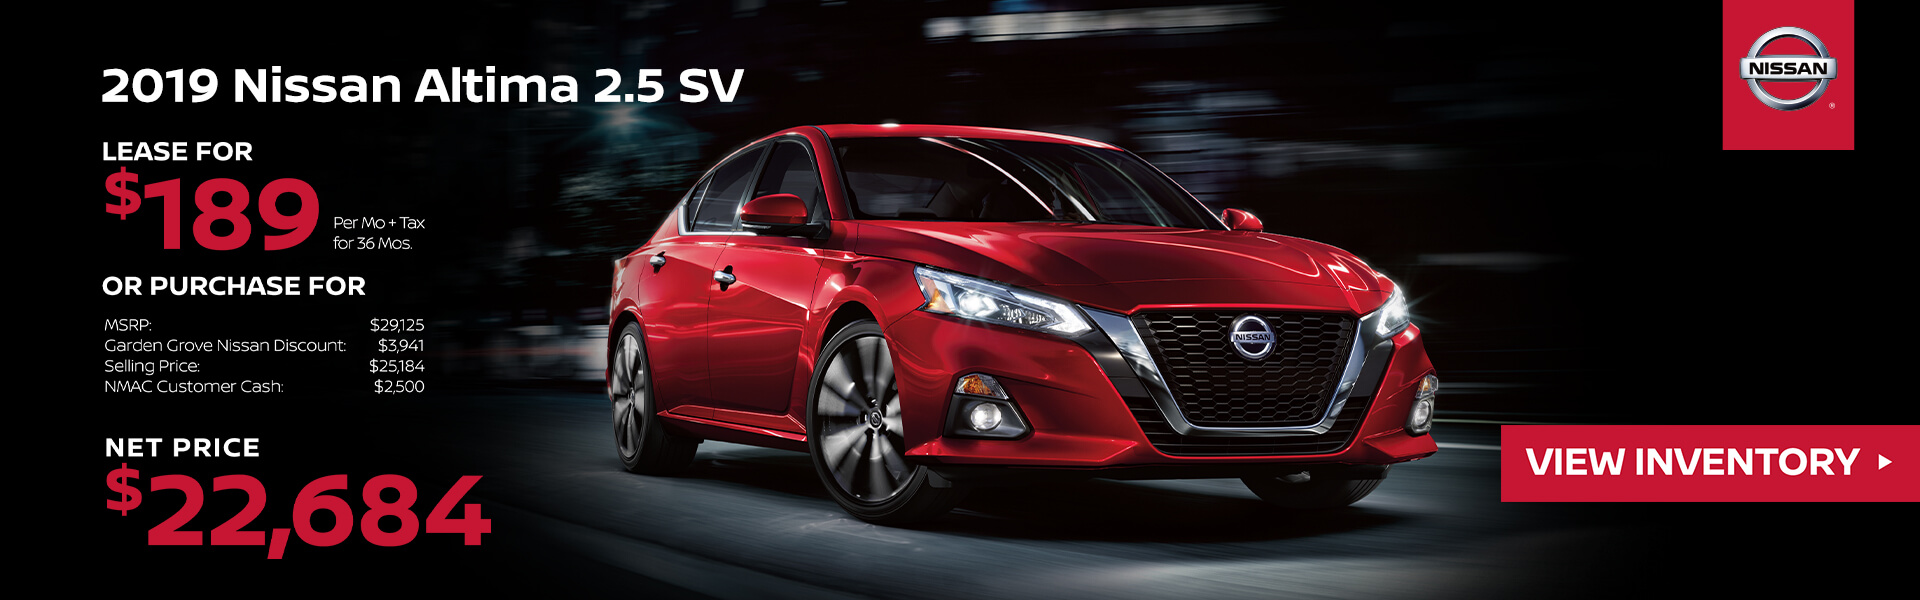 2019 Nissan Altima Lease for $189